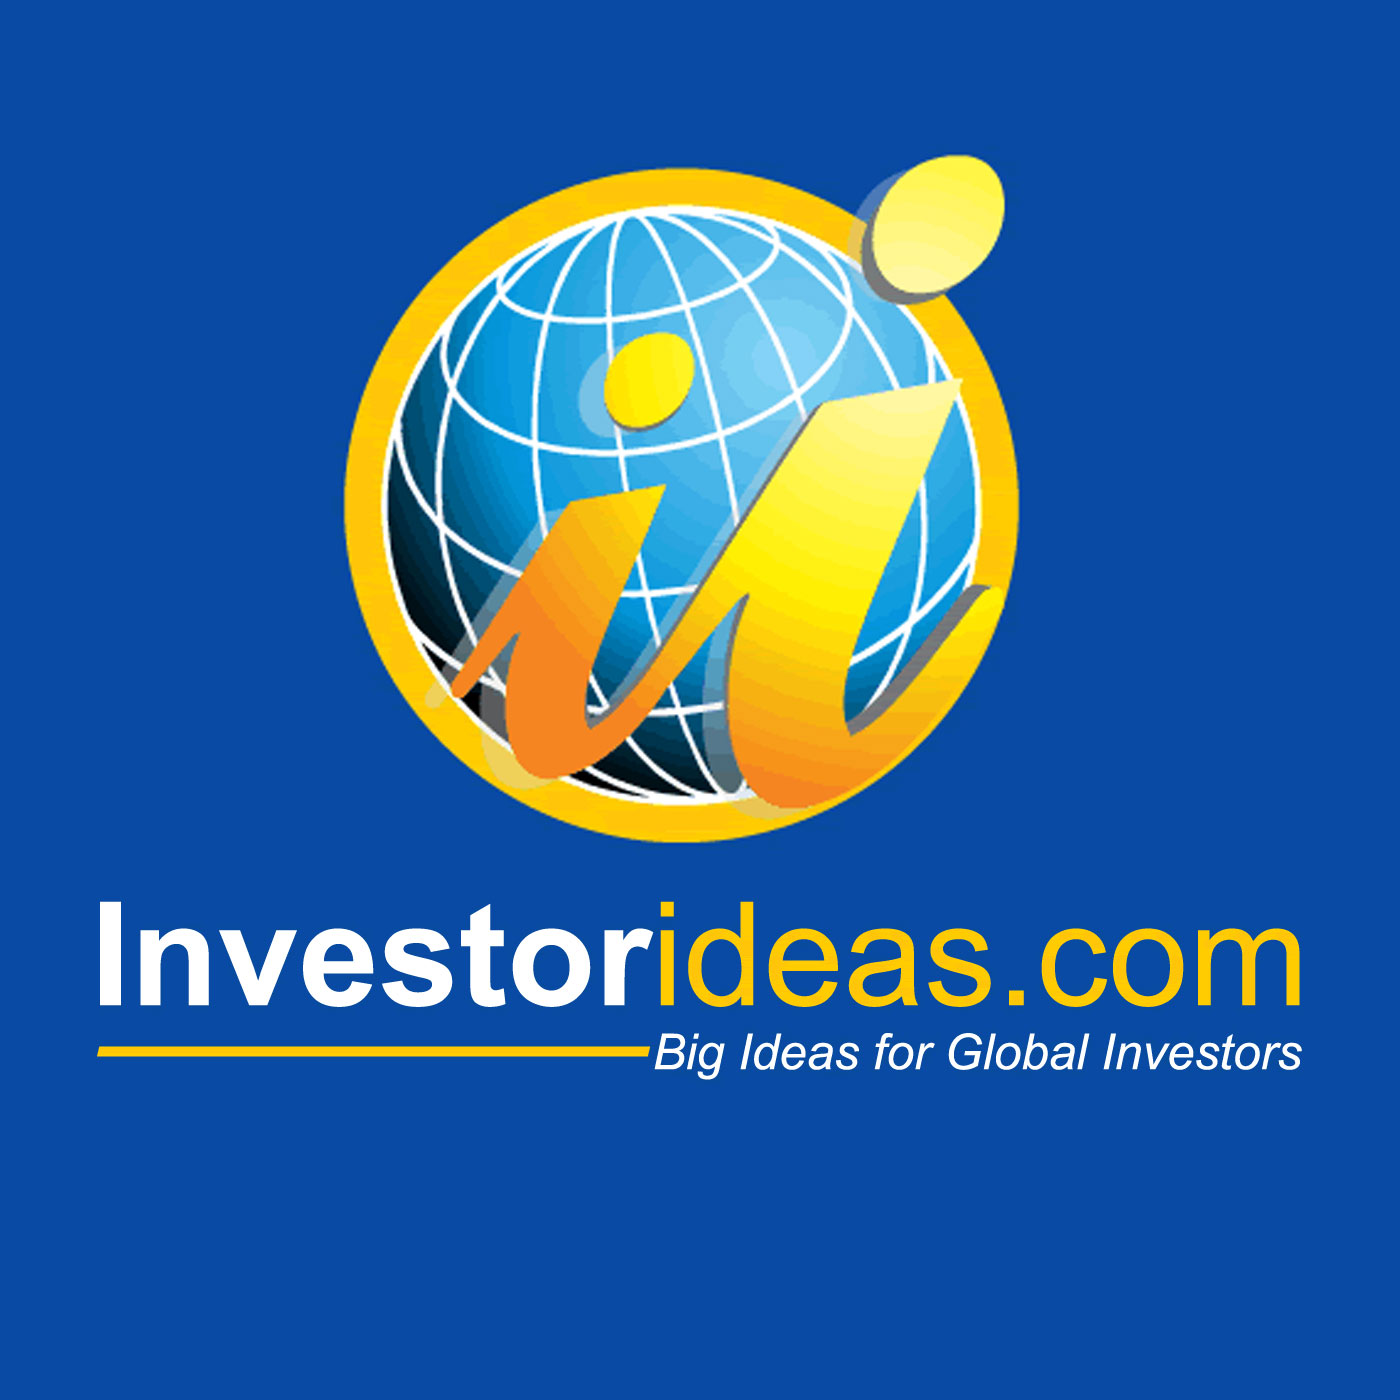 Investor Ideas Potcasts, #Cannabis News and #Stocks on the Move; (TSXV: VIVO) (TSXV: PCLO) (TSX: APHA) (NYSE: APHA) (OTC: HEMP)